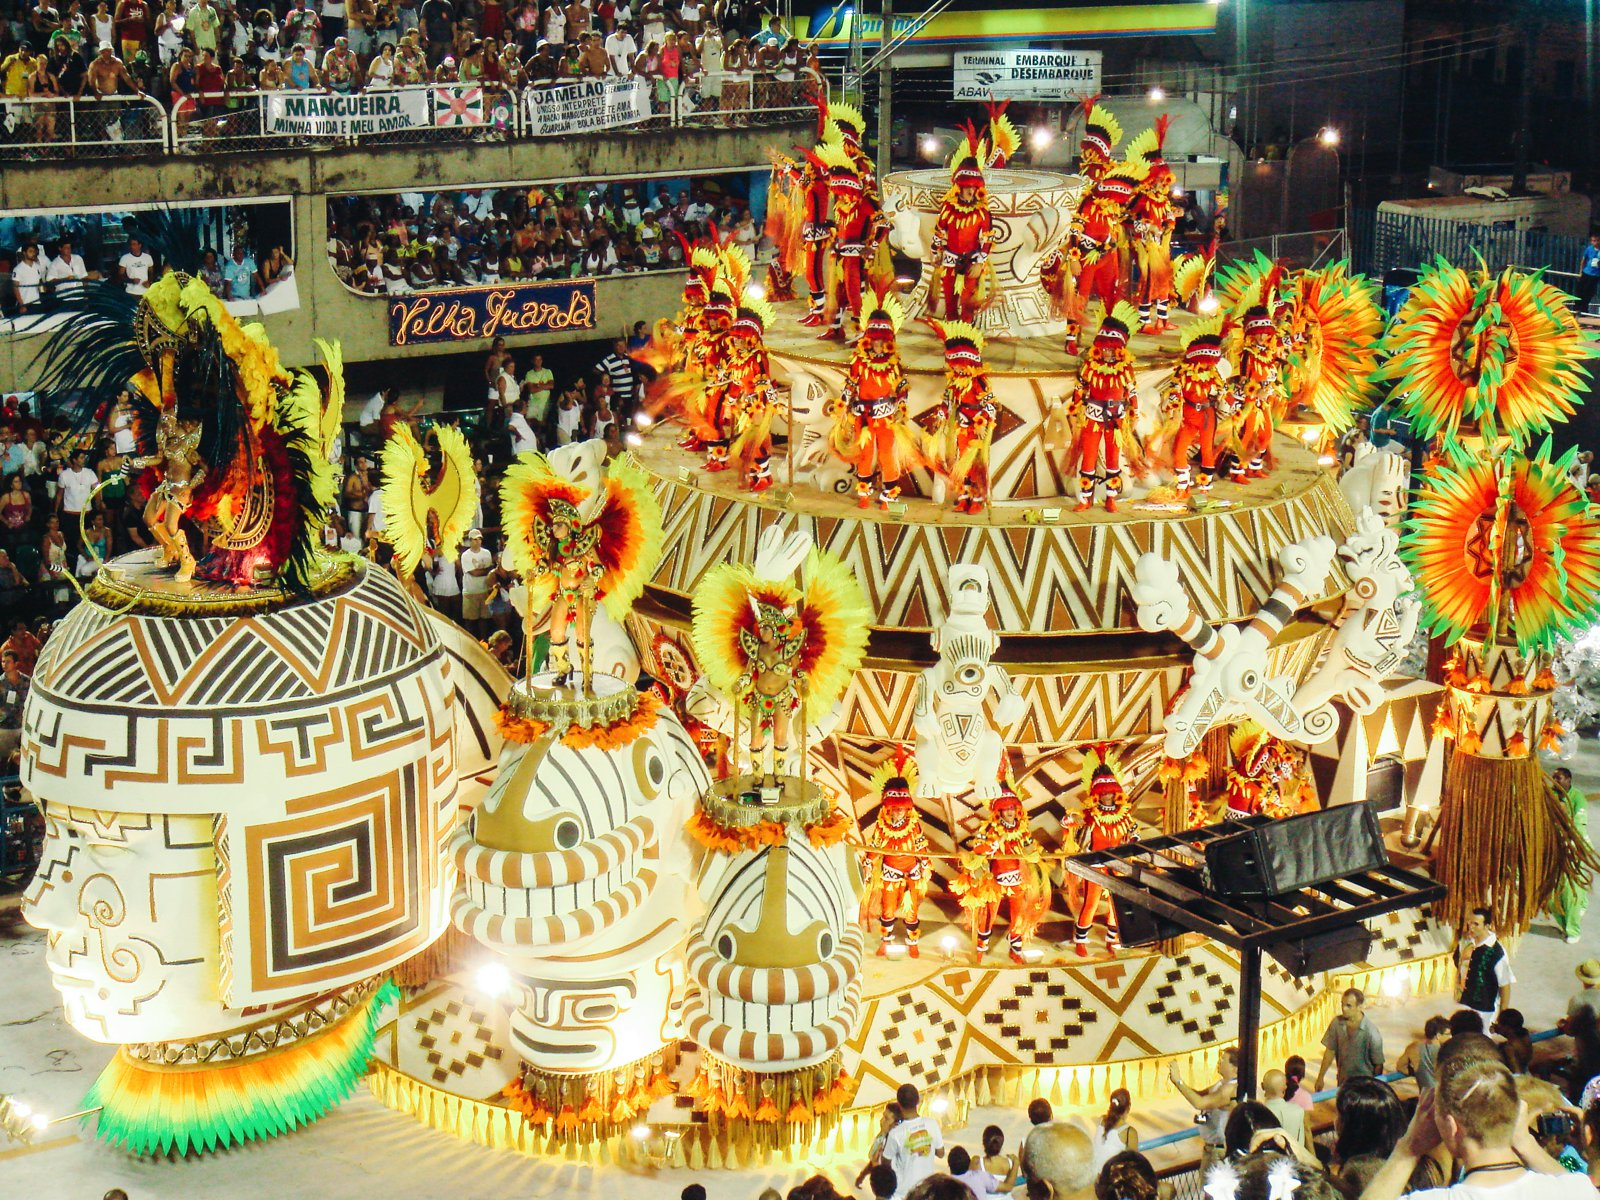 10 Fantastic Sights You Have To See In Rio de Janeiro, Brazil (5)